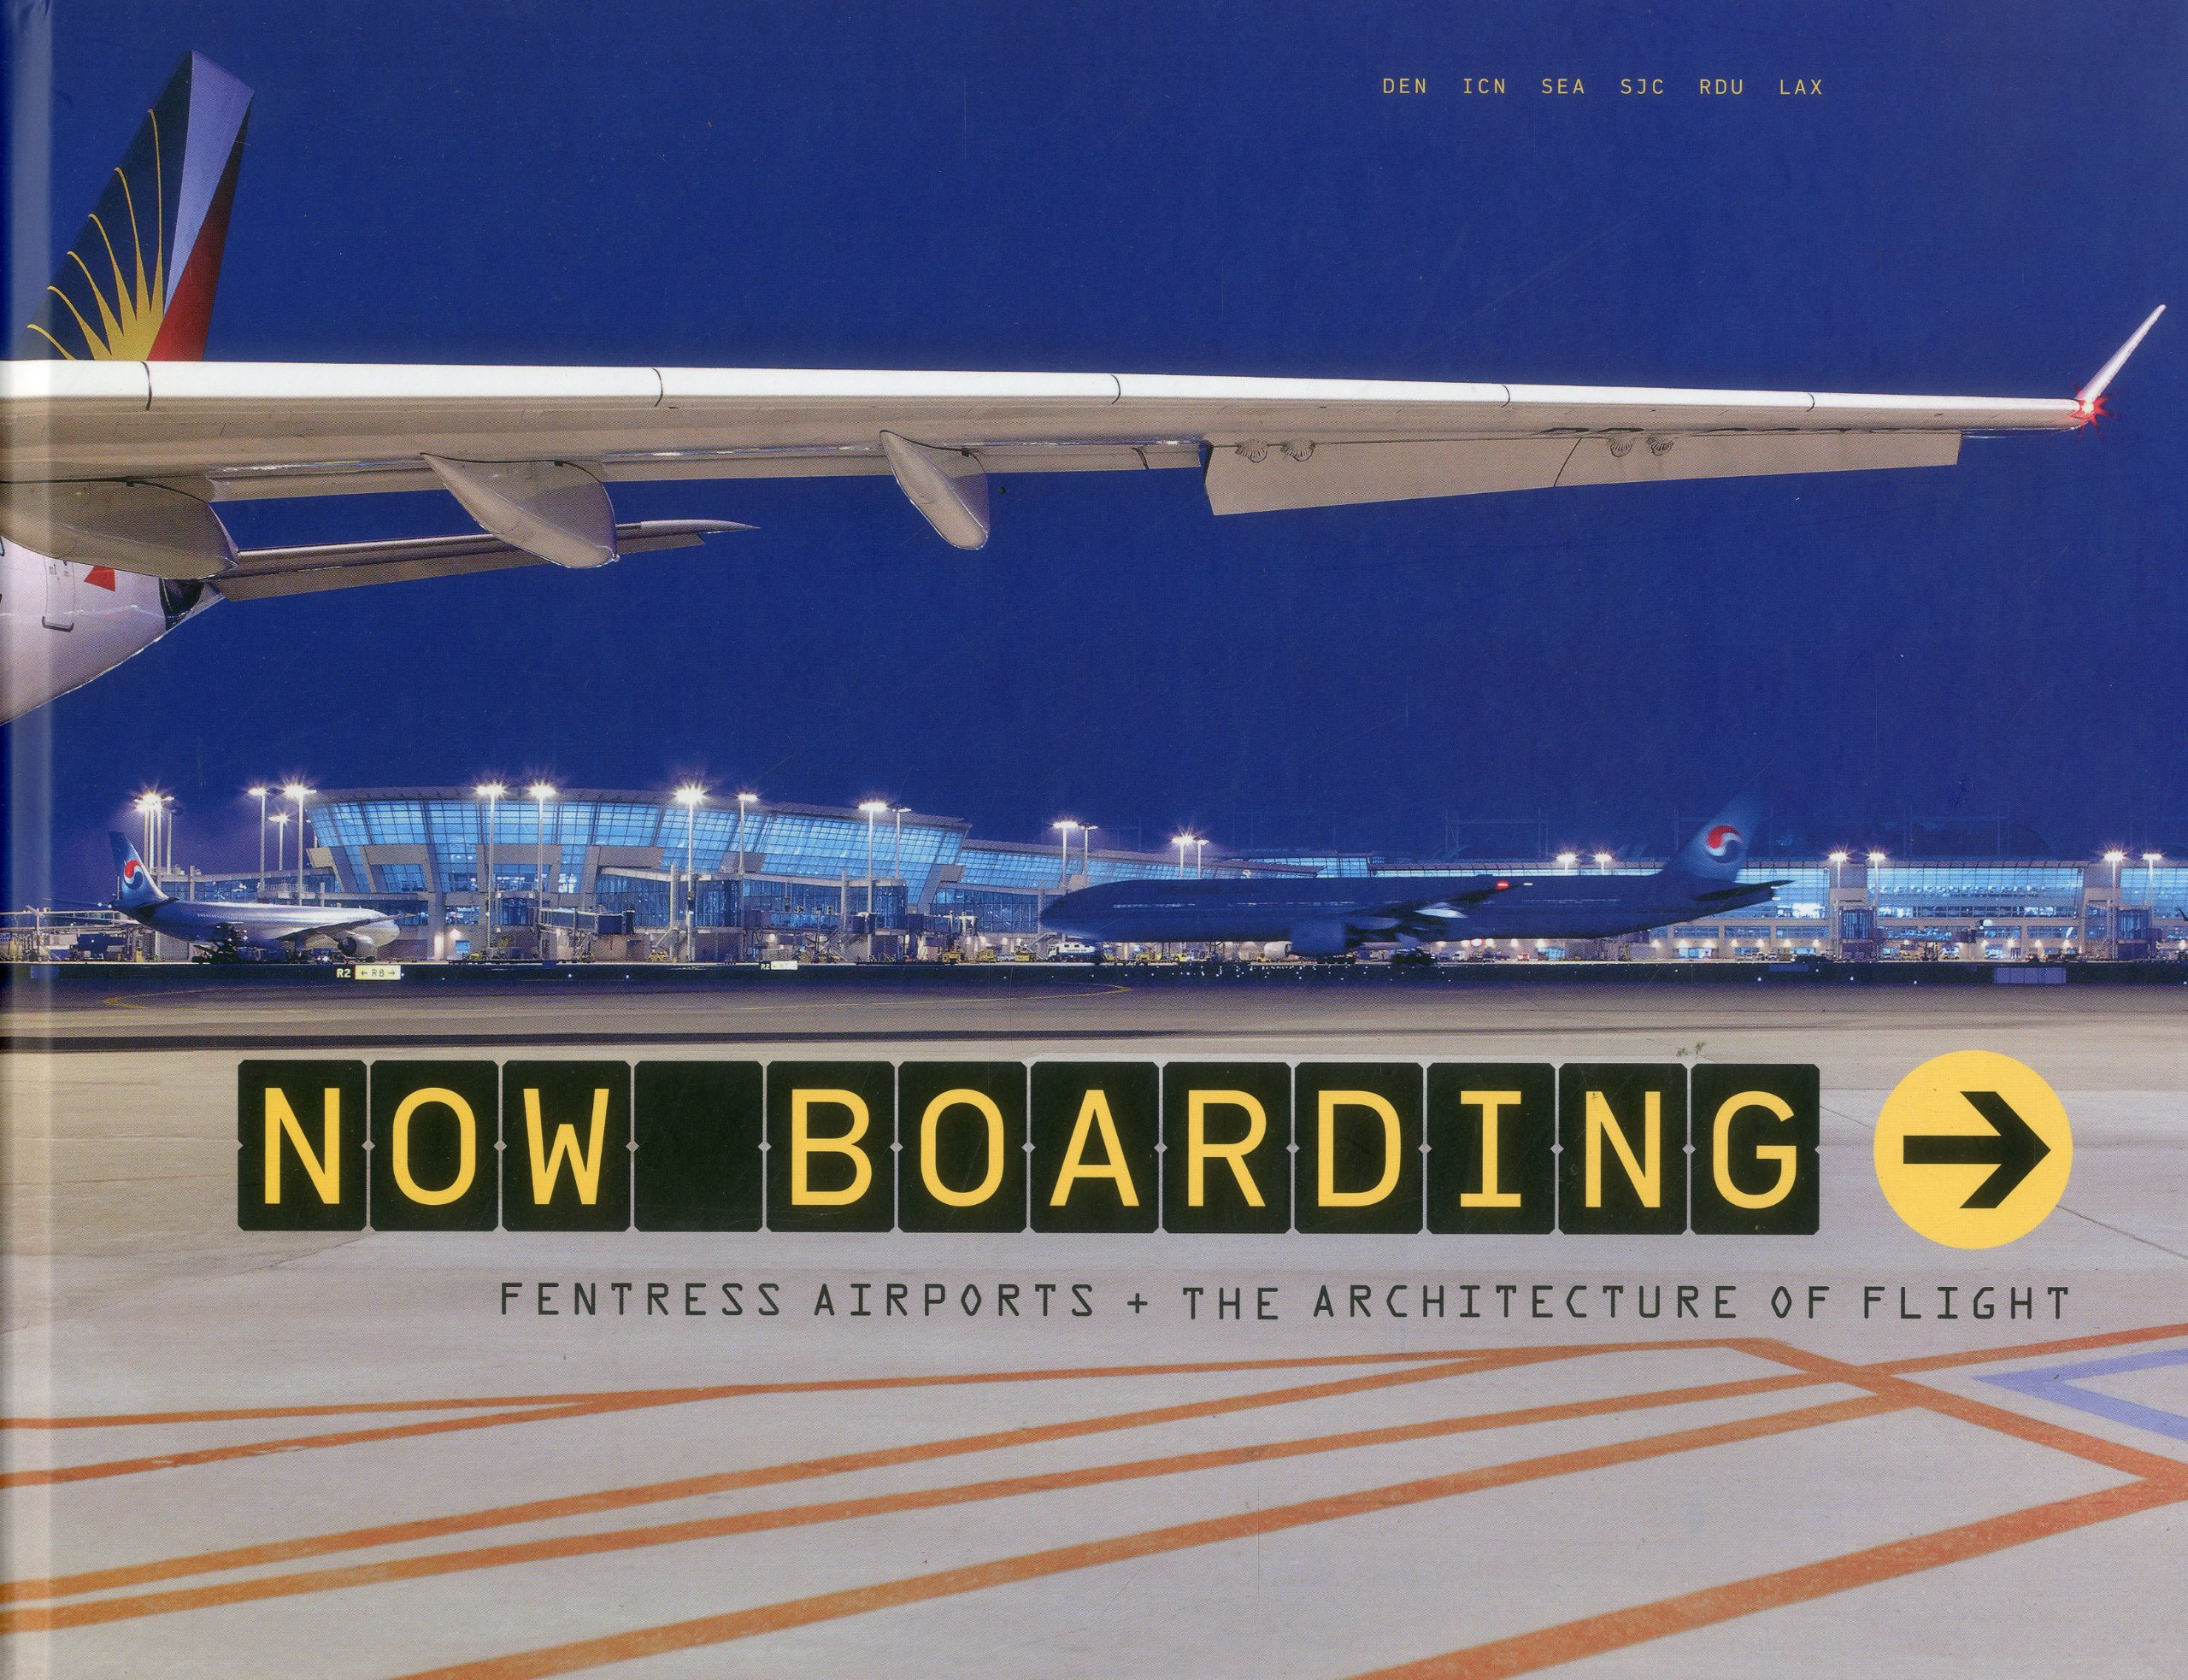 Now Boarding: Fentress Airport and the Architecture of Flight